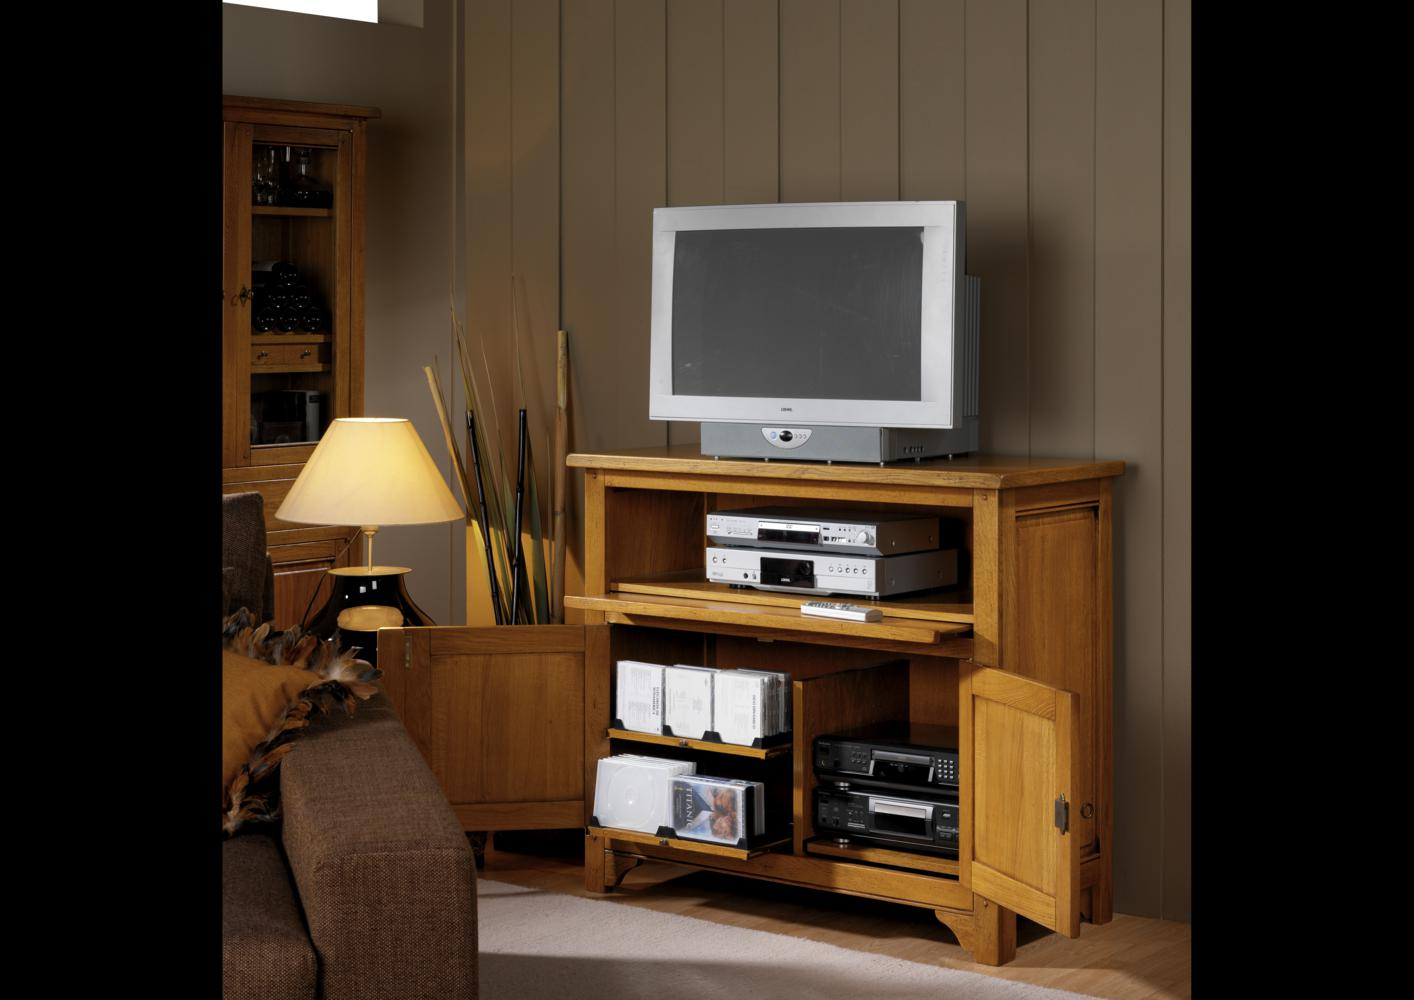 acheter votre meuble tv hifi double niche desus fixe chez. Black Bedroom Furniture Sets. Home Design Ideas